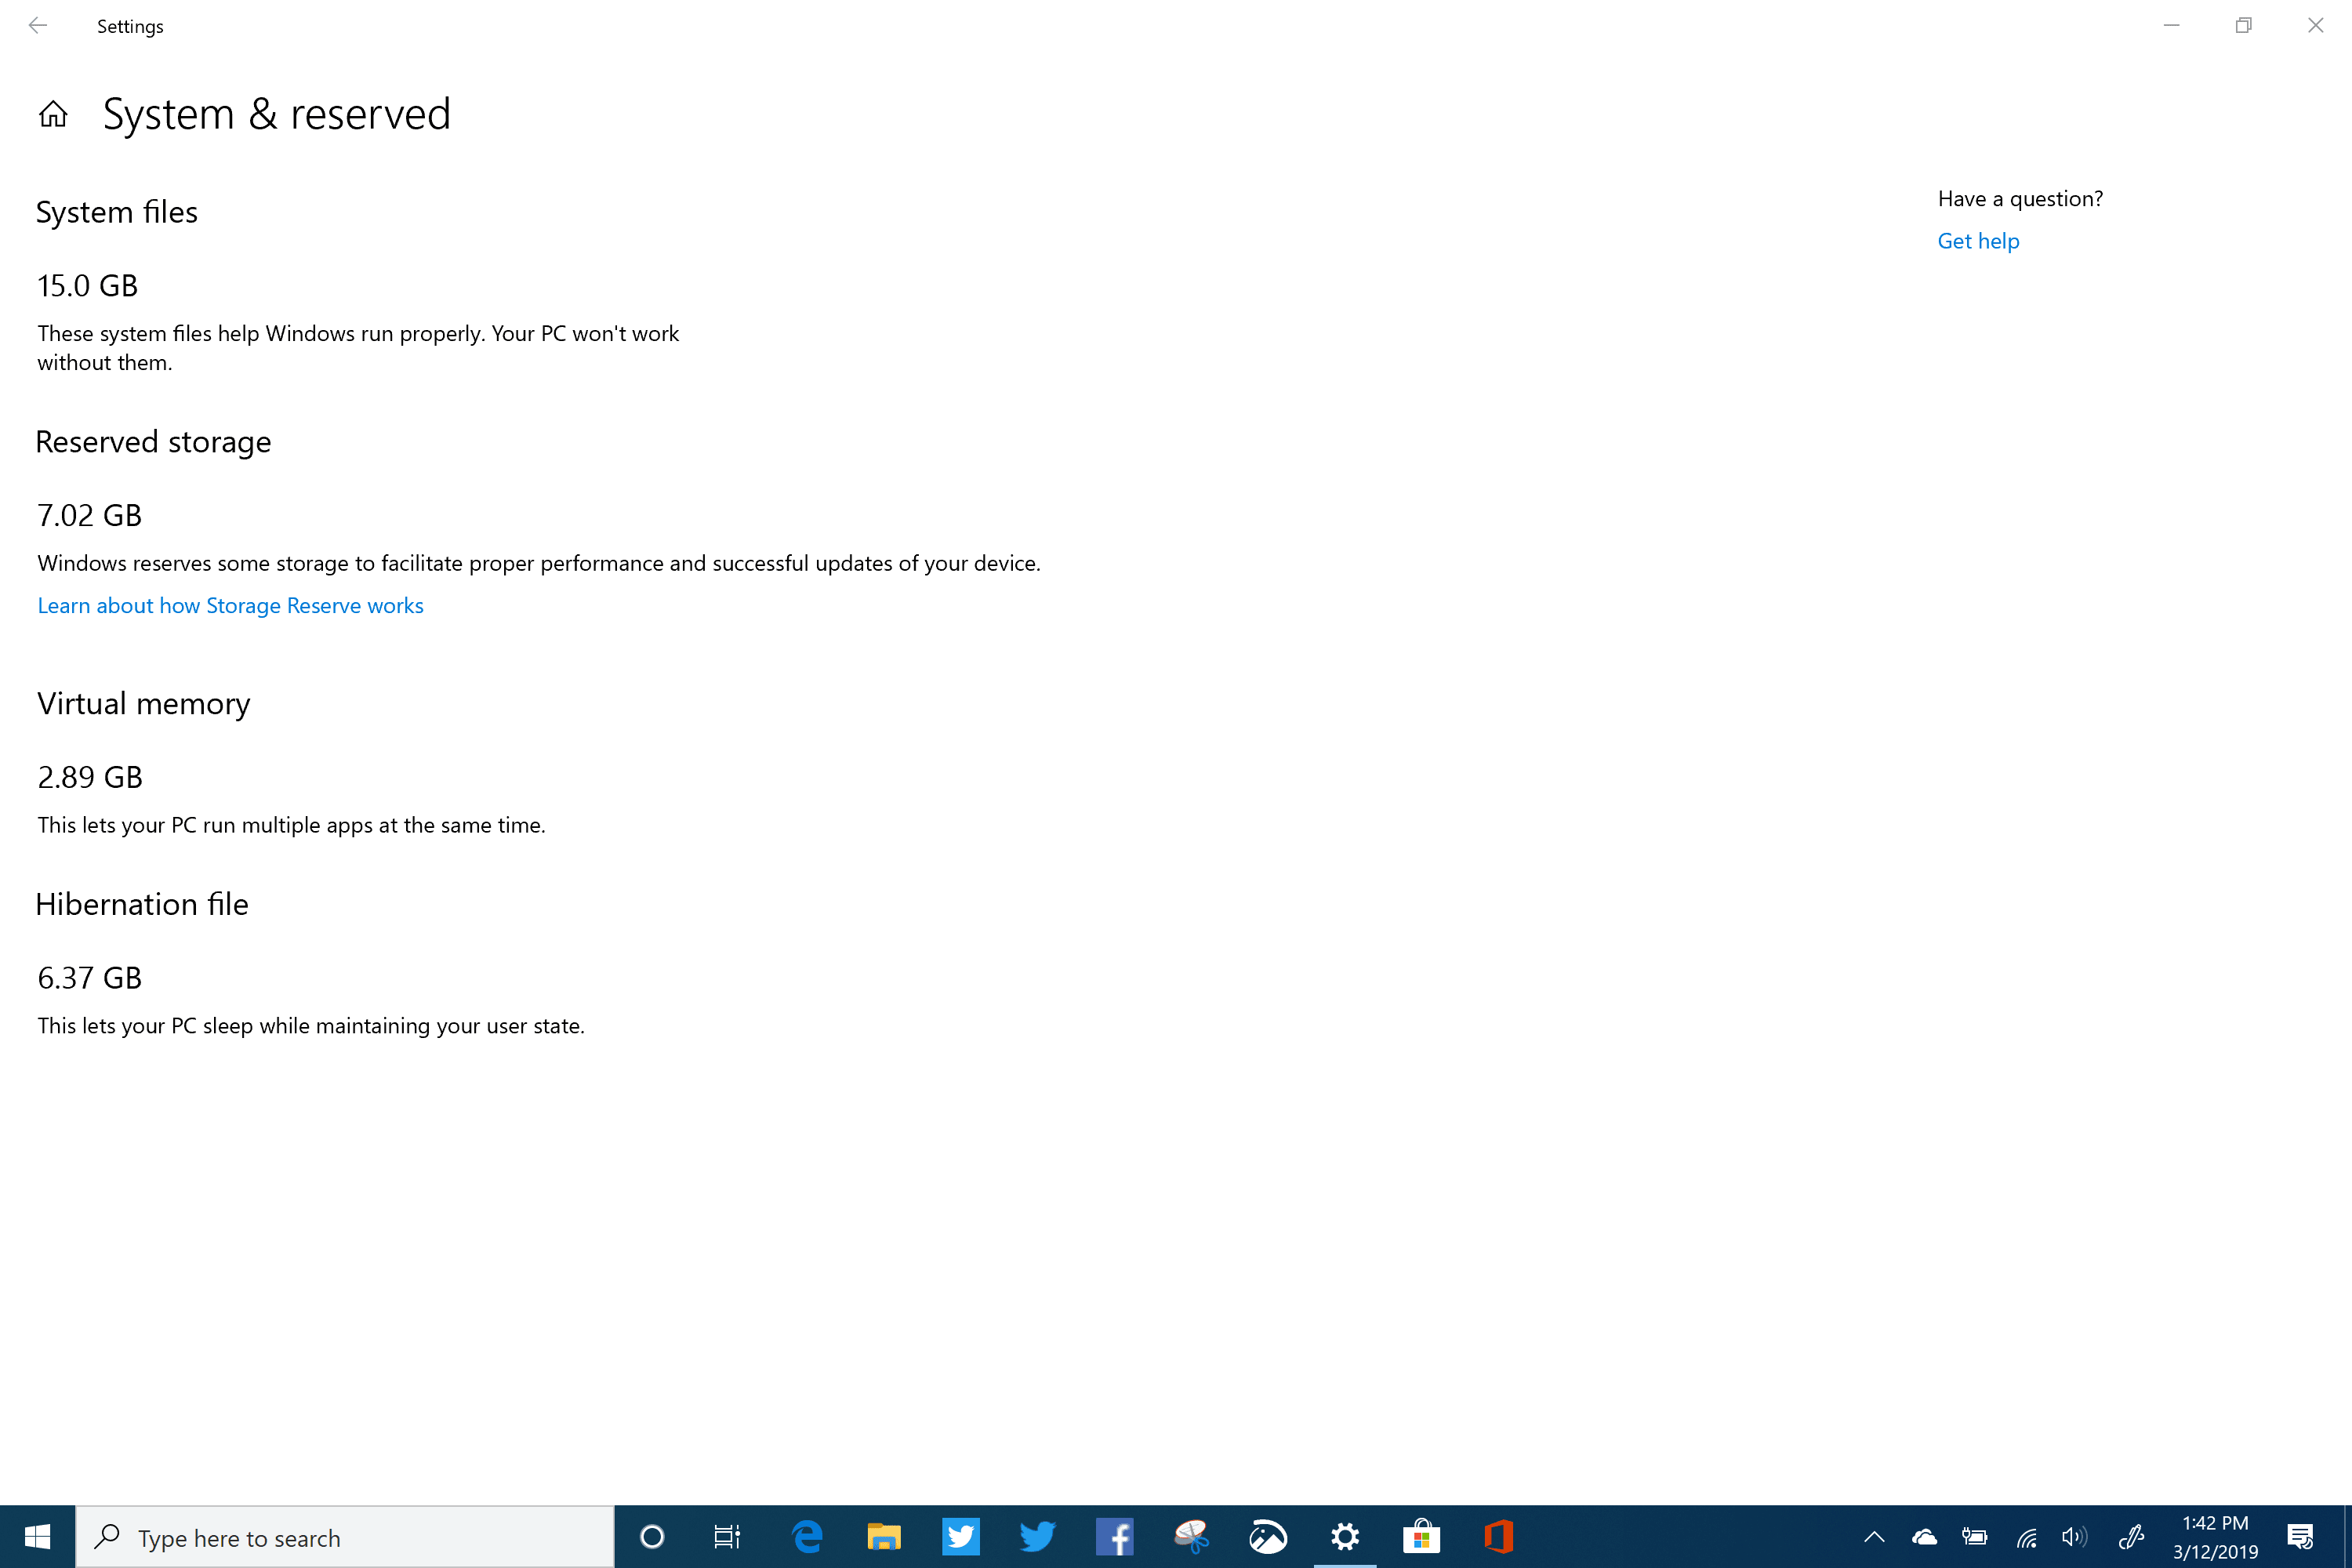 Windows 10 (19H1) Reserved Storage Build 18356 - Surface Book